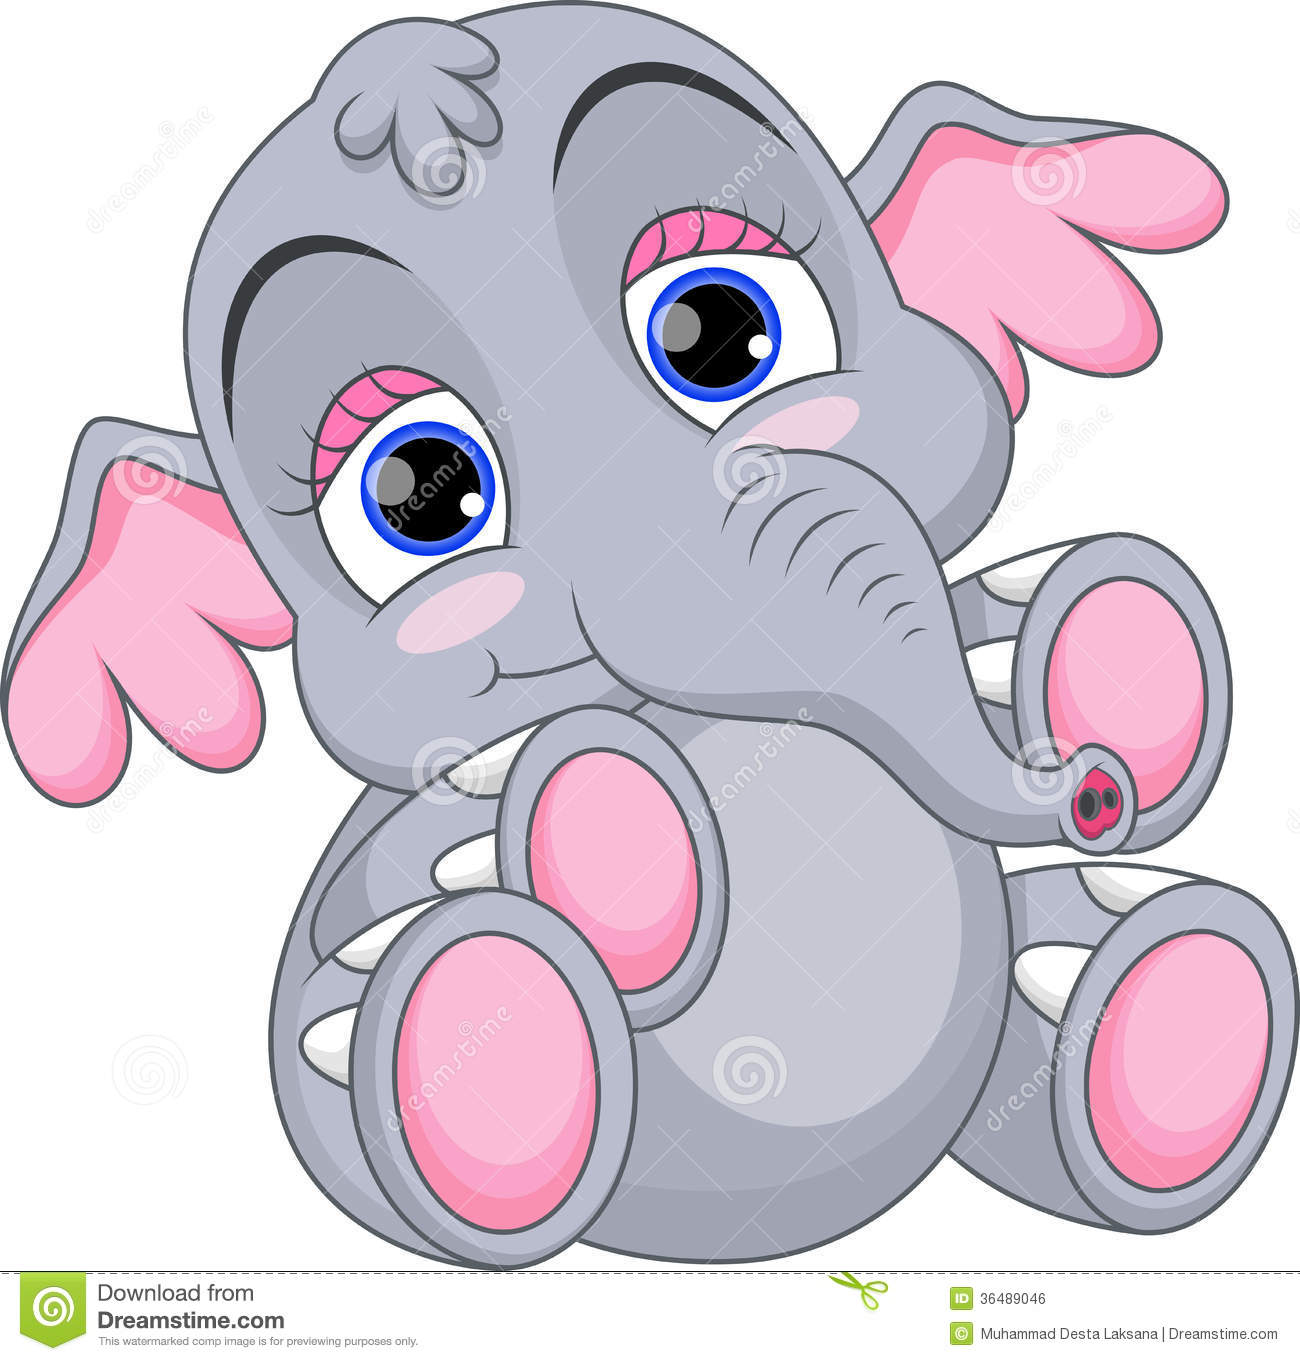 Baby Shower With Cute Cartoon Elephants Stock Vector - Image: 74748015